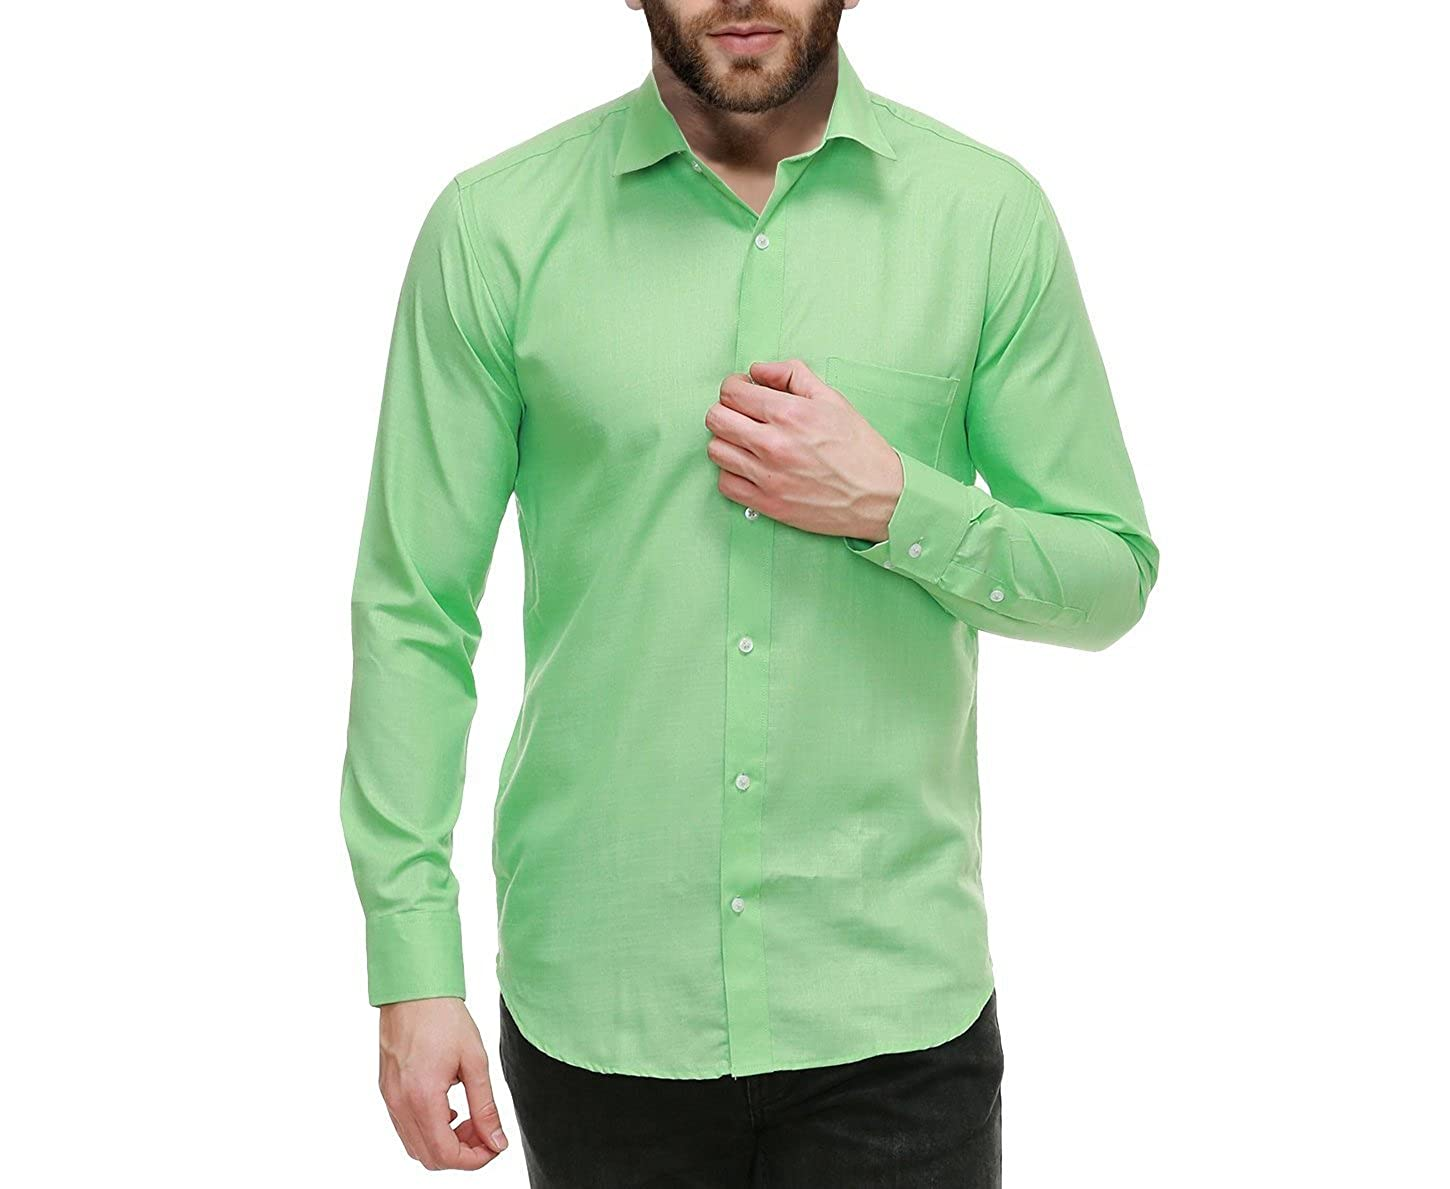 Buy Sunshiny Mens Light Green Shirts 42 At Amazon In,Table Centerpiece Ideas For Everyday